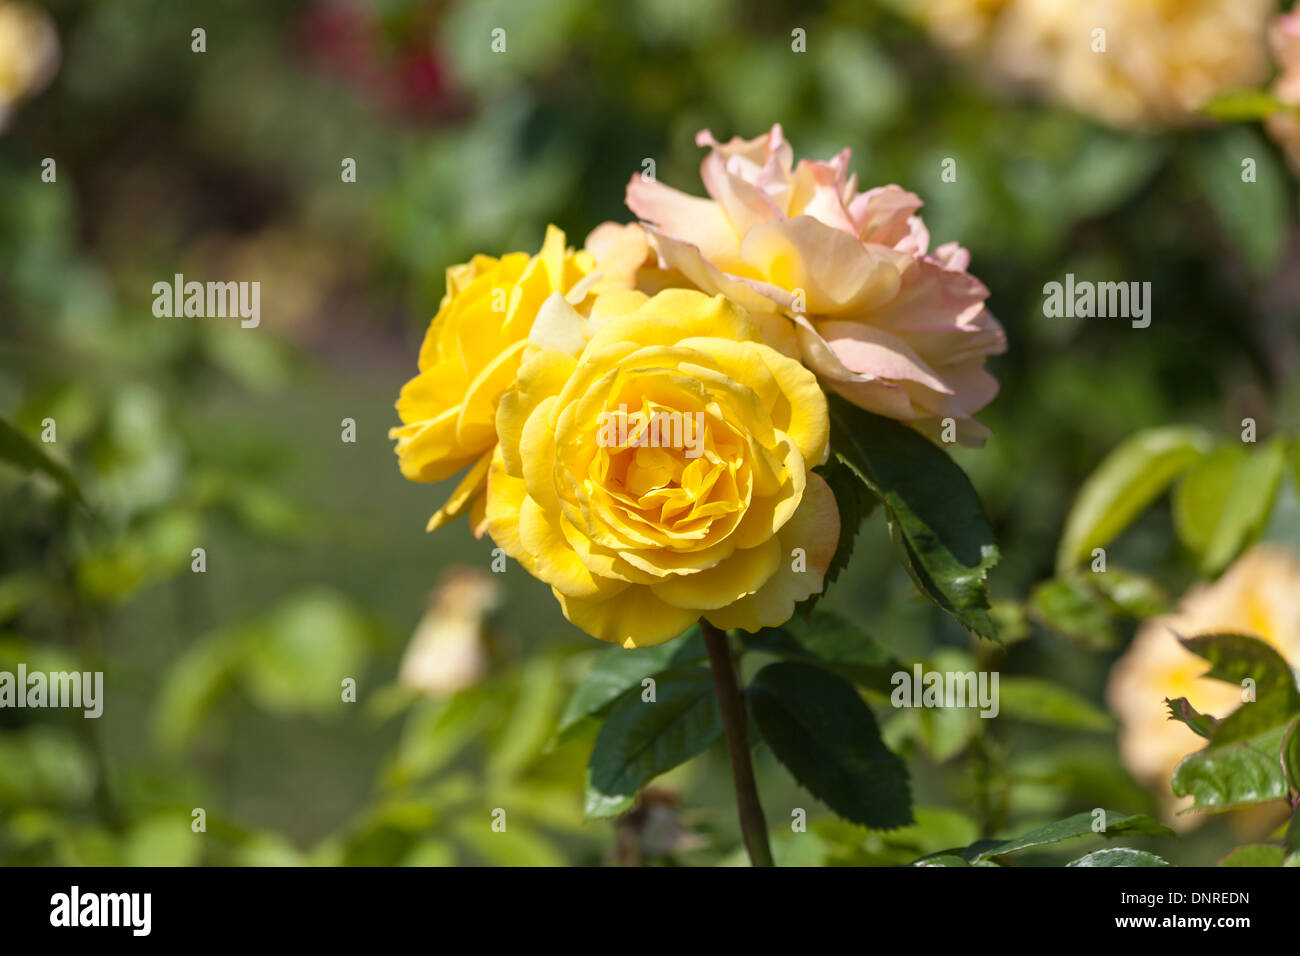 Yellow rose, turning to pink, 'China Town' - Stock Image